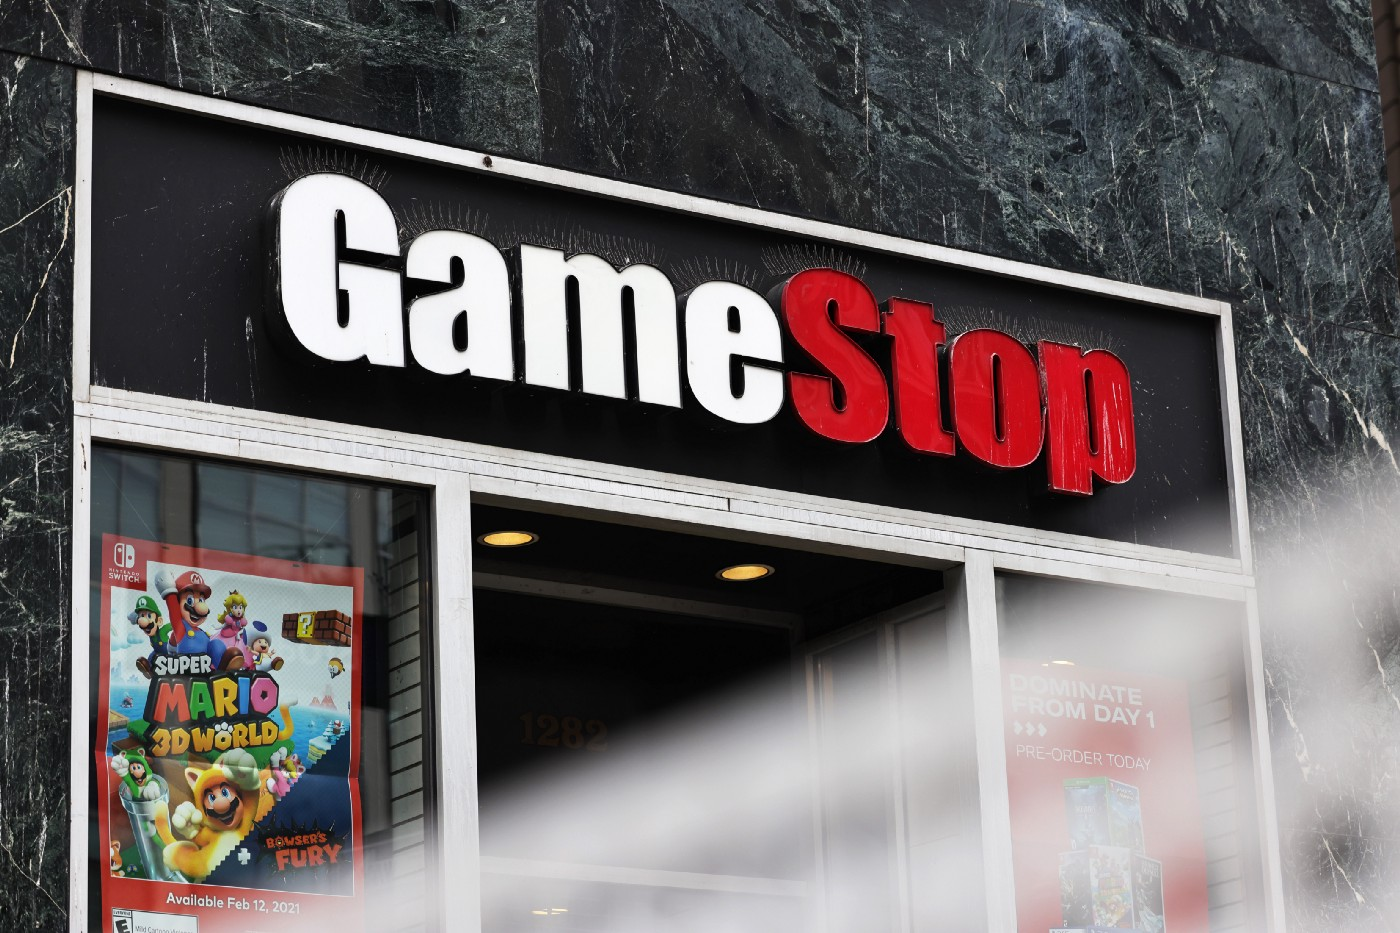 GameStop store signage is seen on January 27, 2021 in New York City.